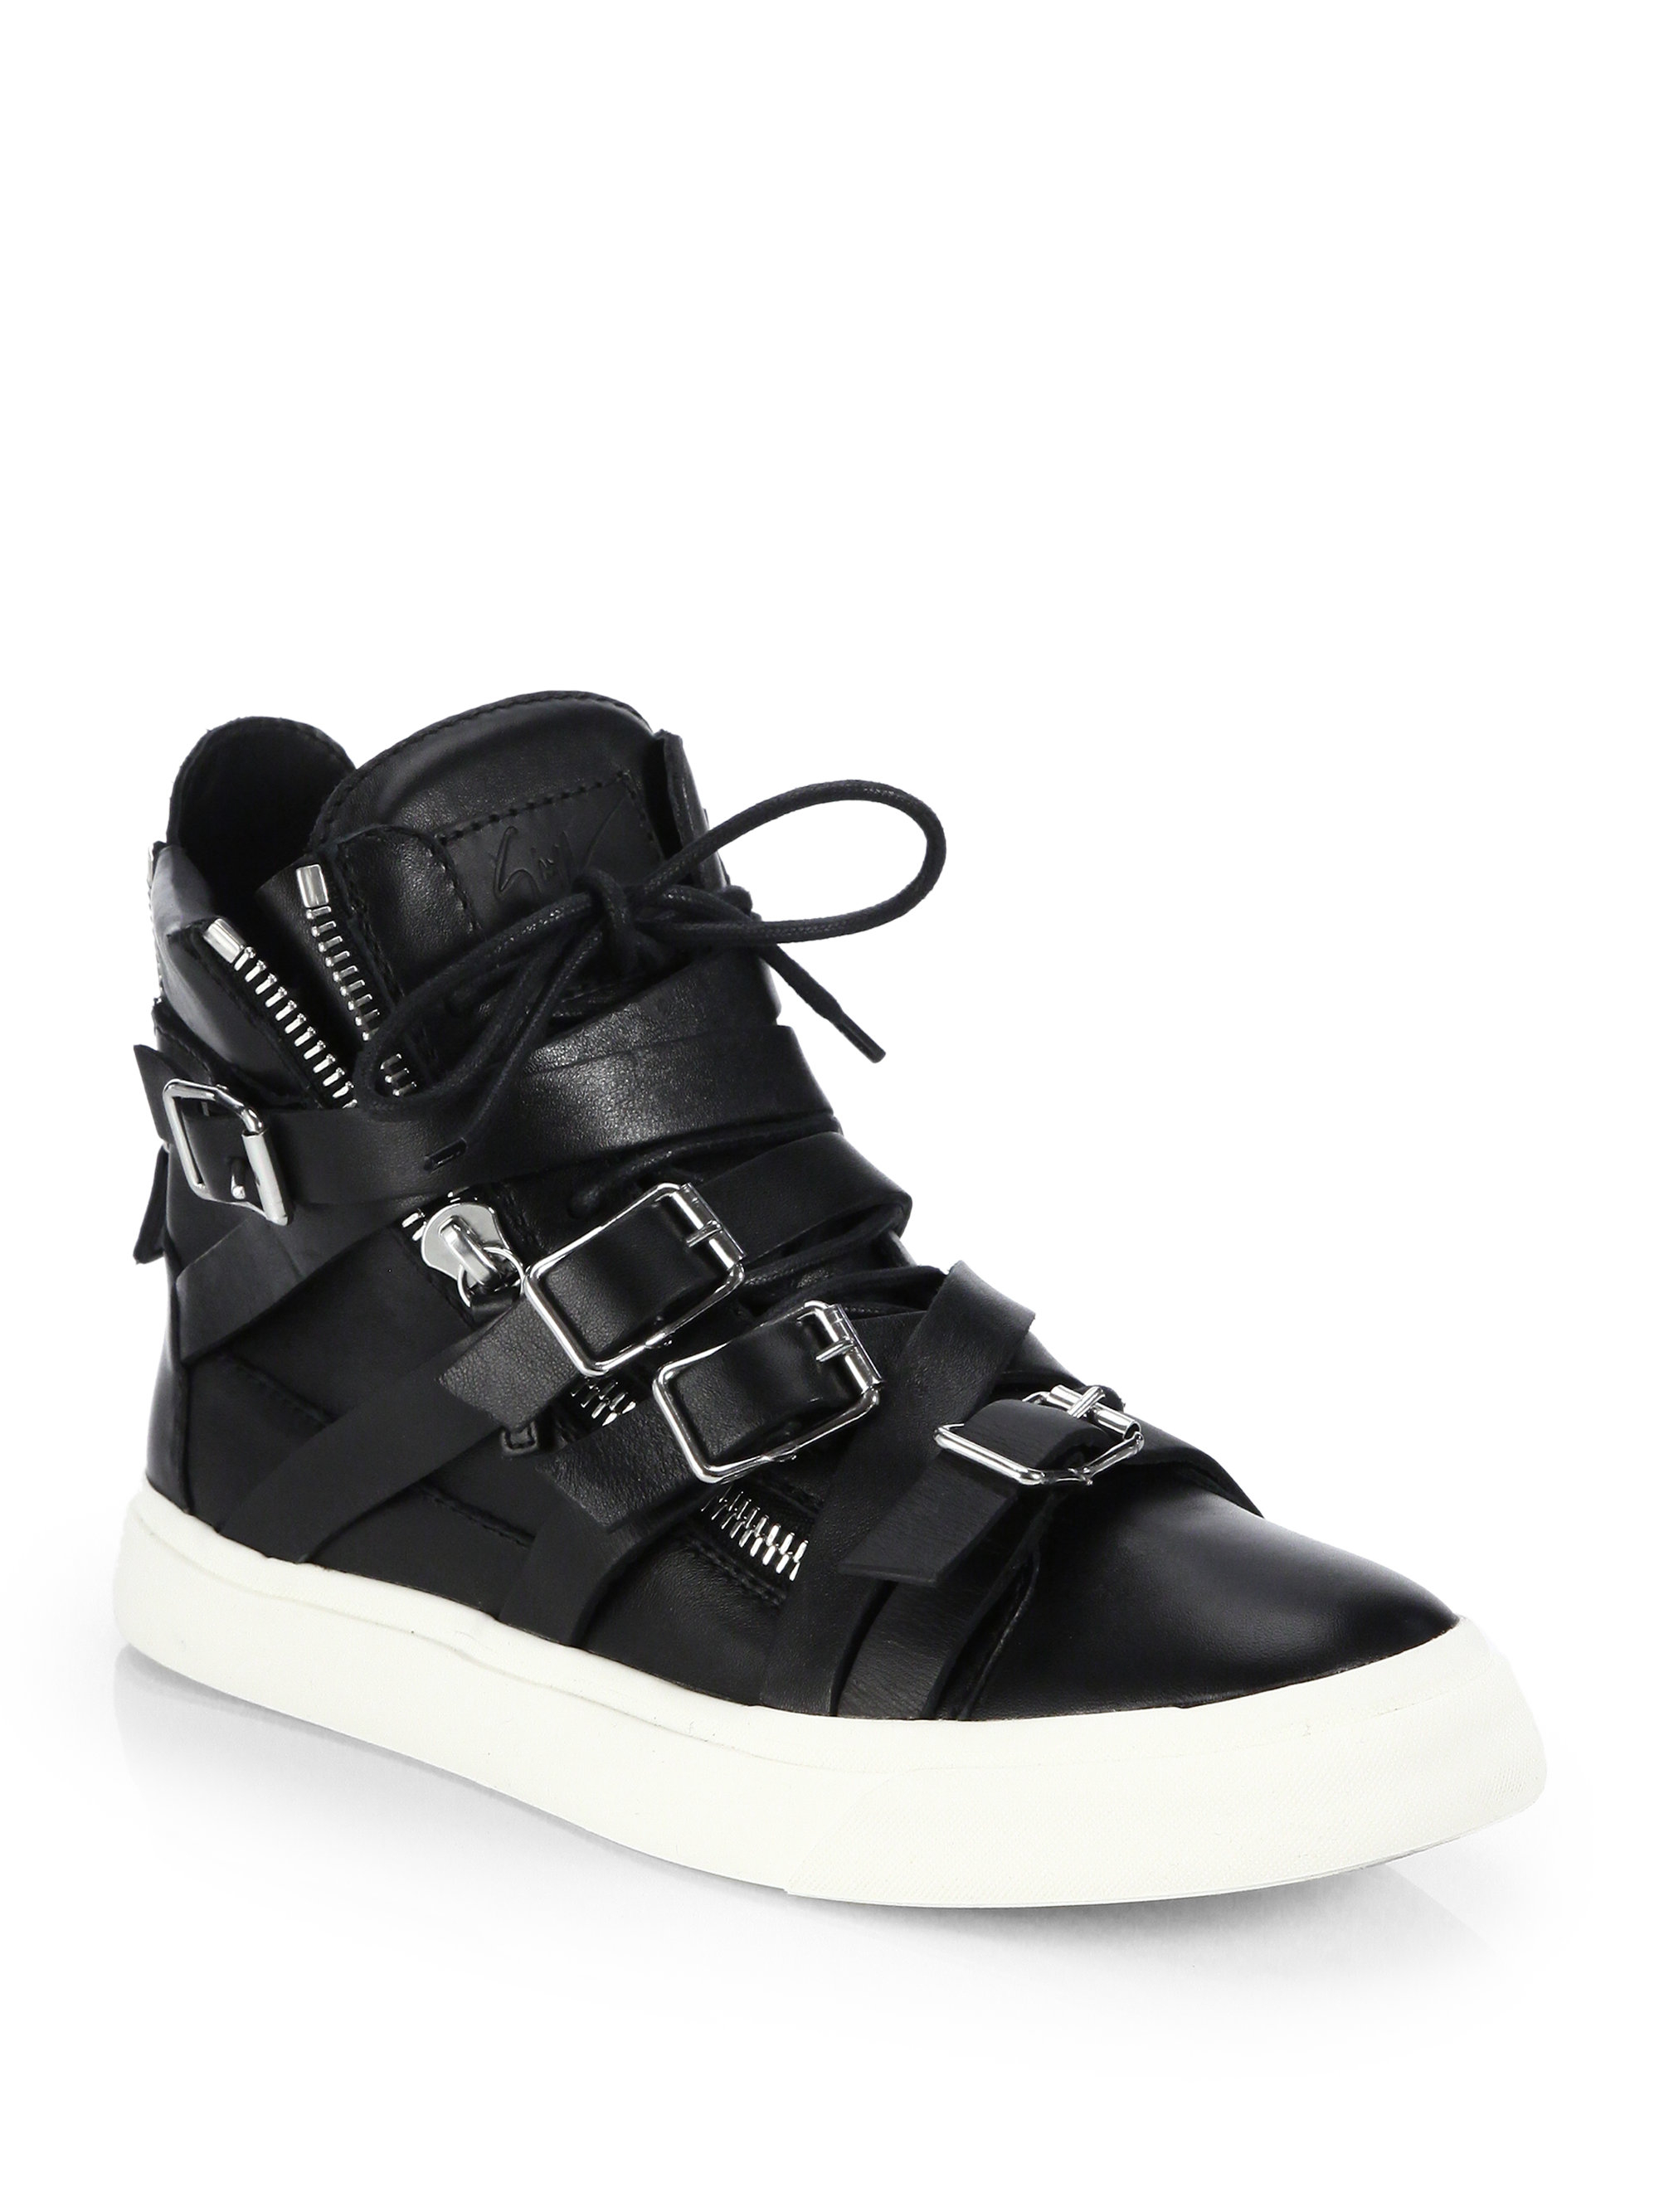 Cheap Enjoy Double sneakers - Black Giuseppe Zanotti 2018 Newest Online Cheap With Paypal Low Shipping Fee Online Outlet Locations Sale Online zdPGB0